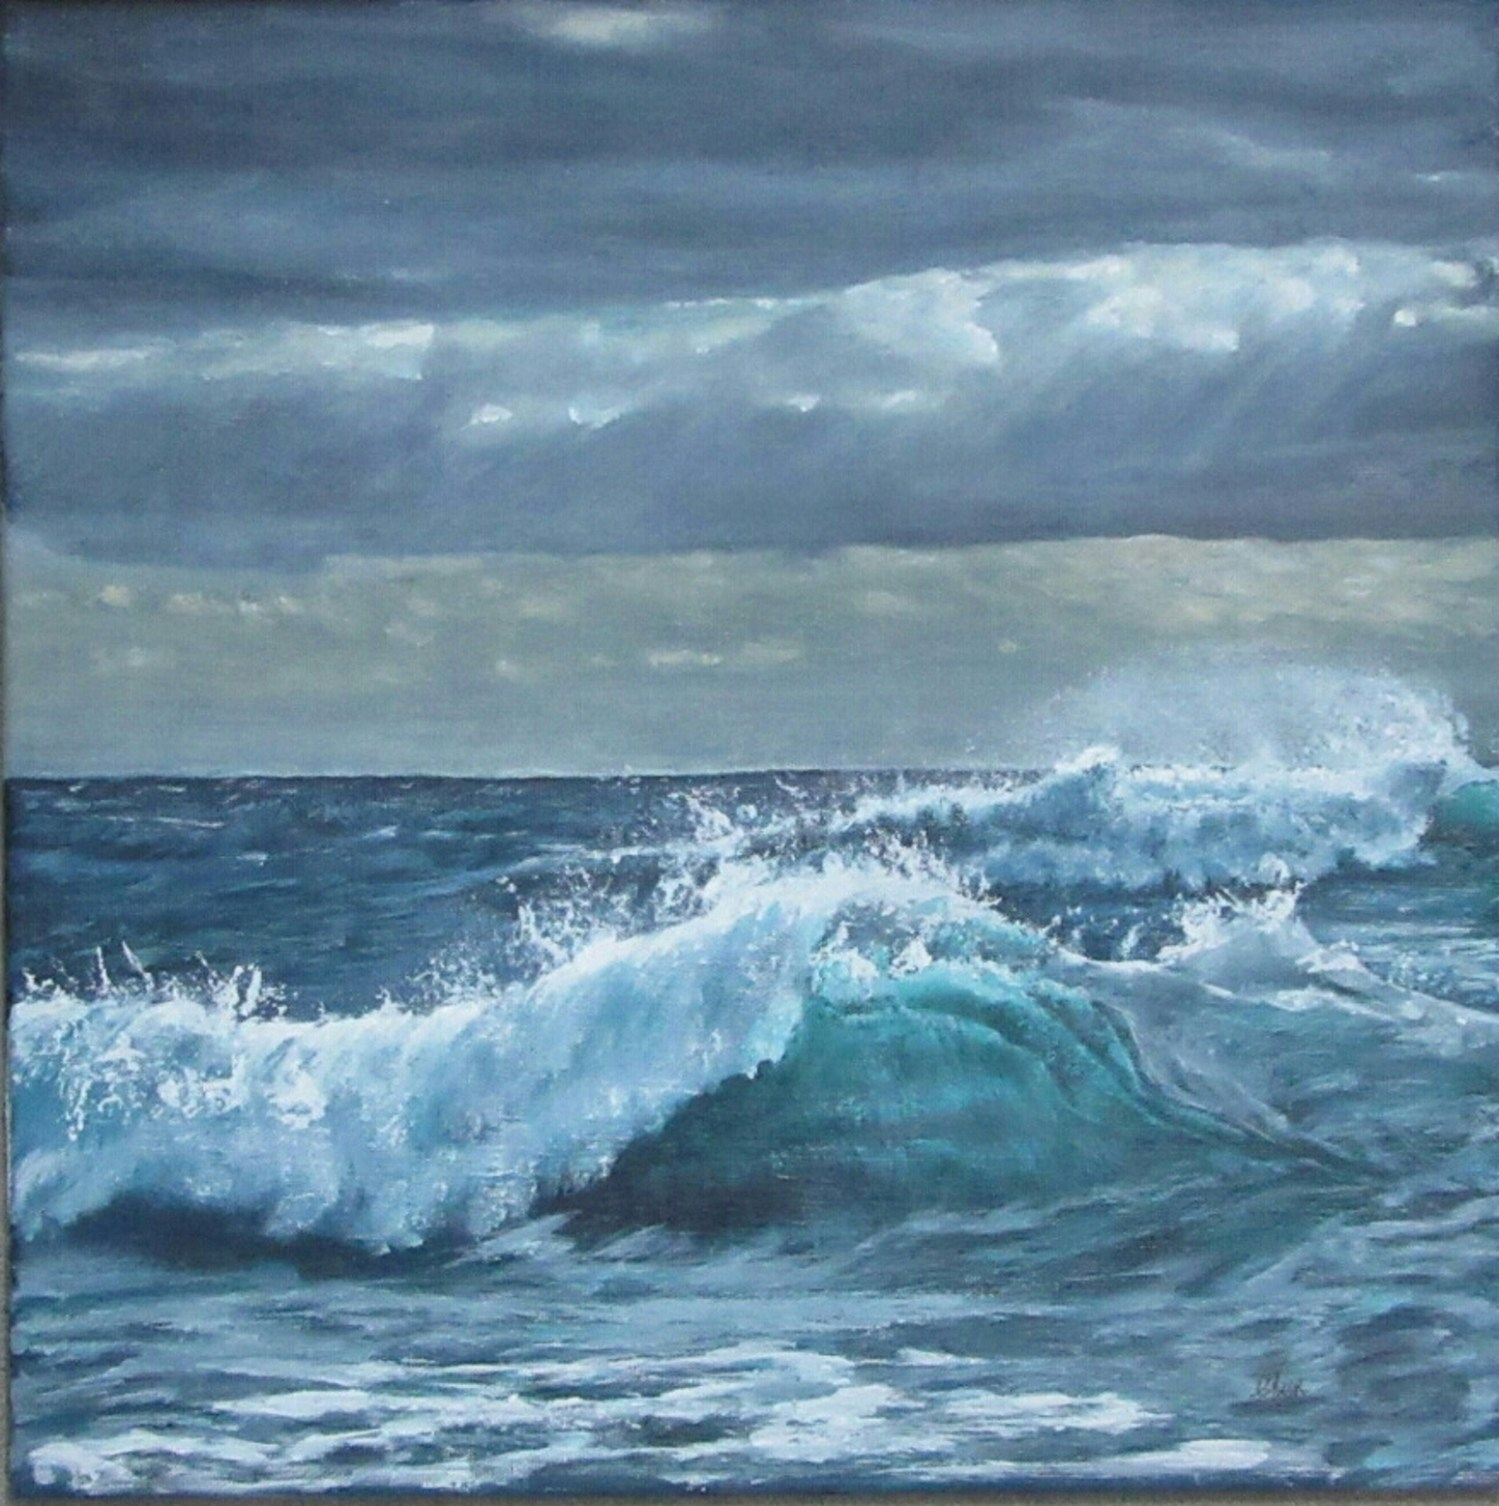 The Storm Breaks - SOLD